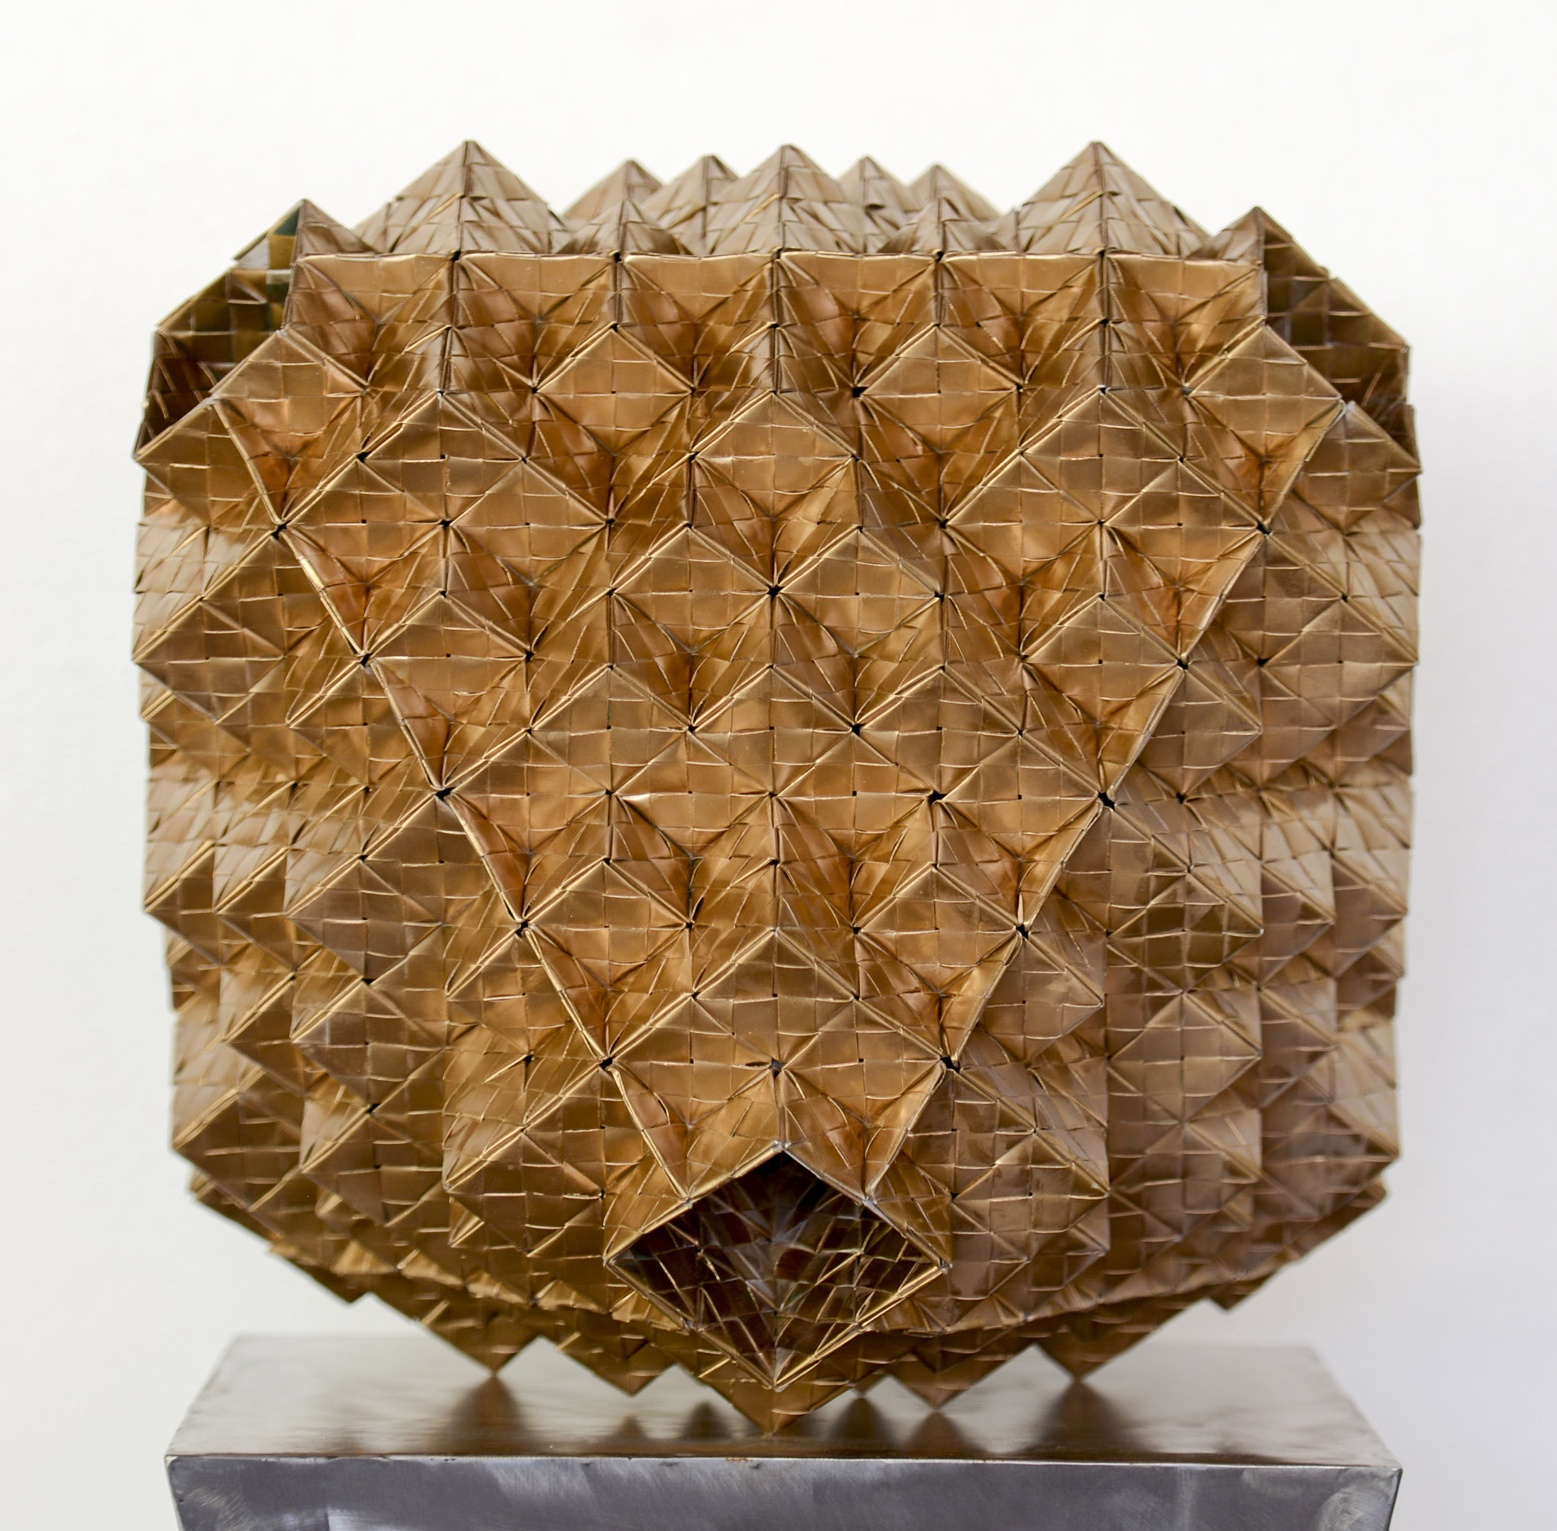 Hollowed Octahedron through Paper-Engineering |